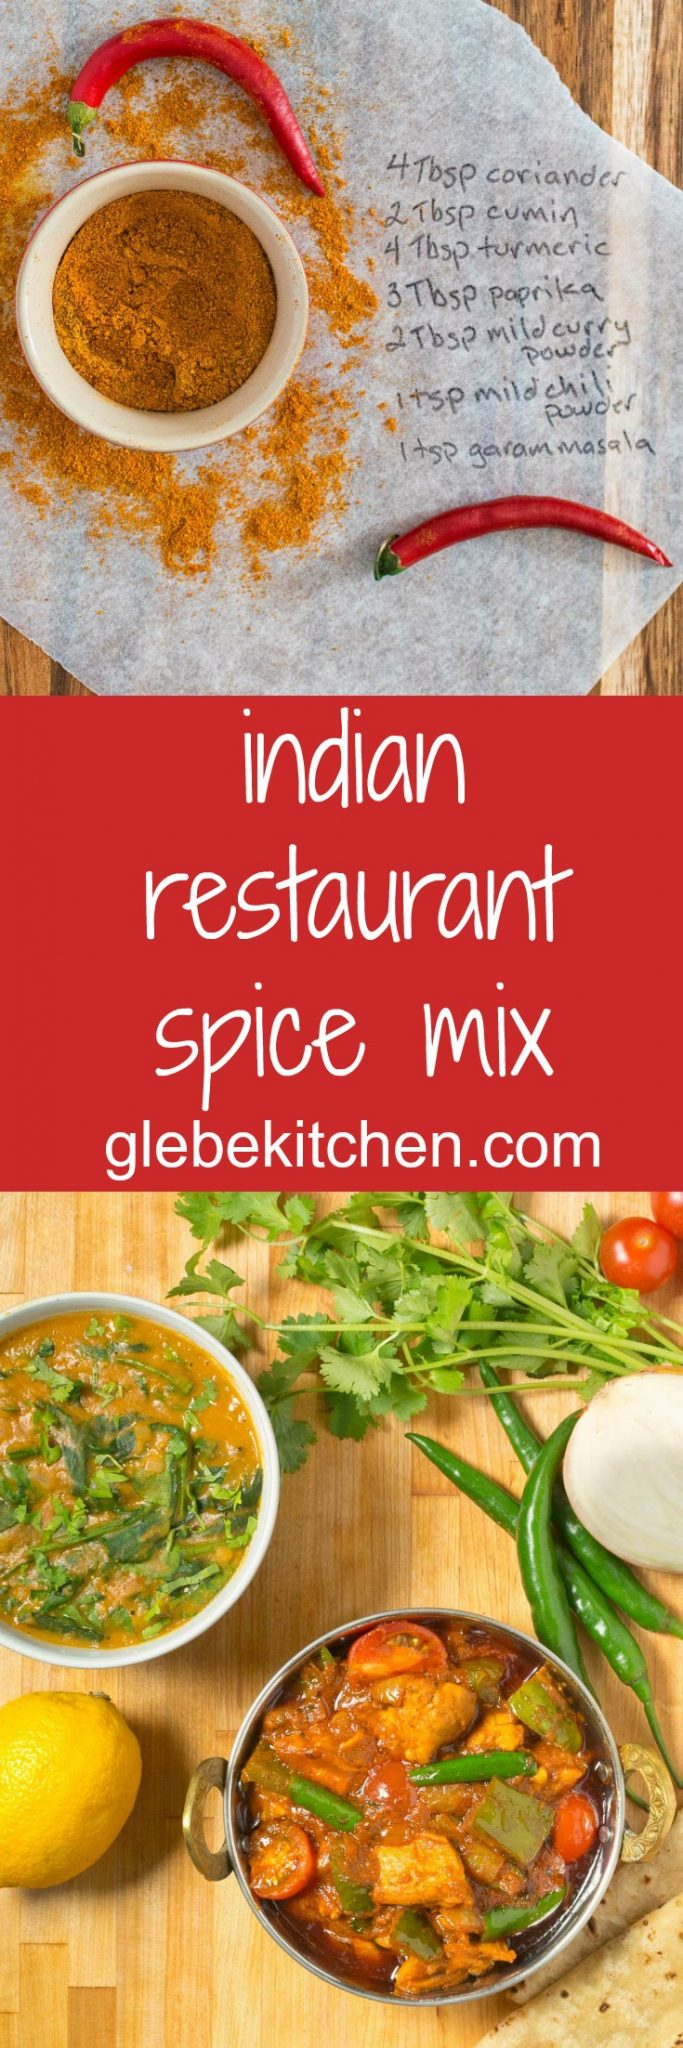 This simple Indian restaurant spice mix can be used to make almost any Indian restaurant curry.